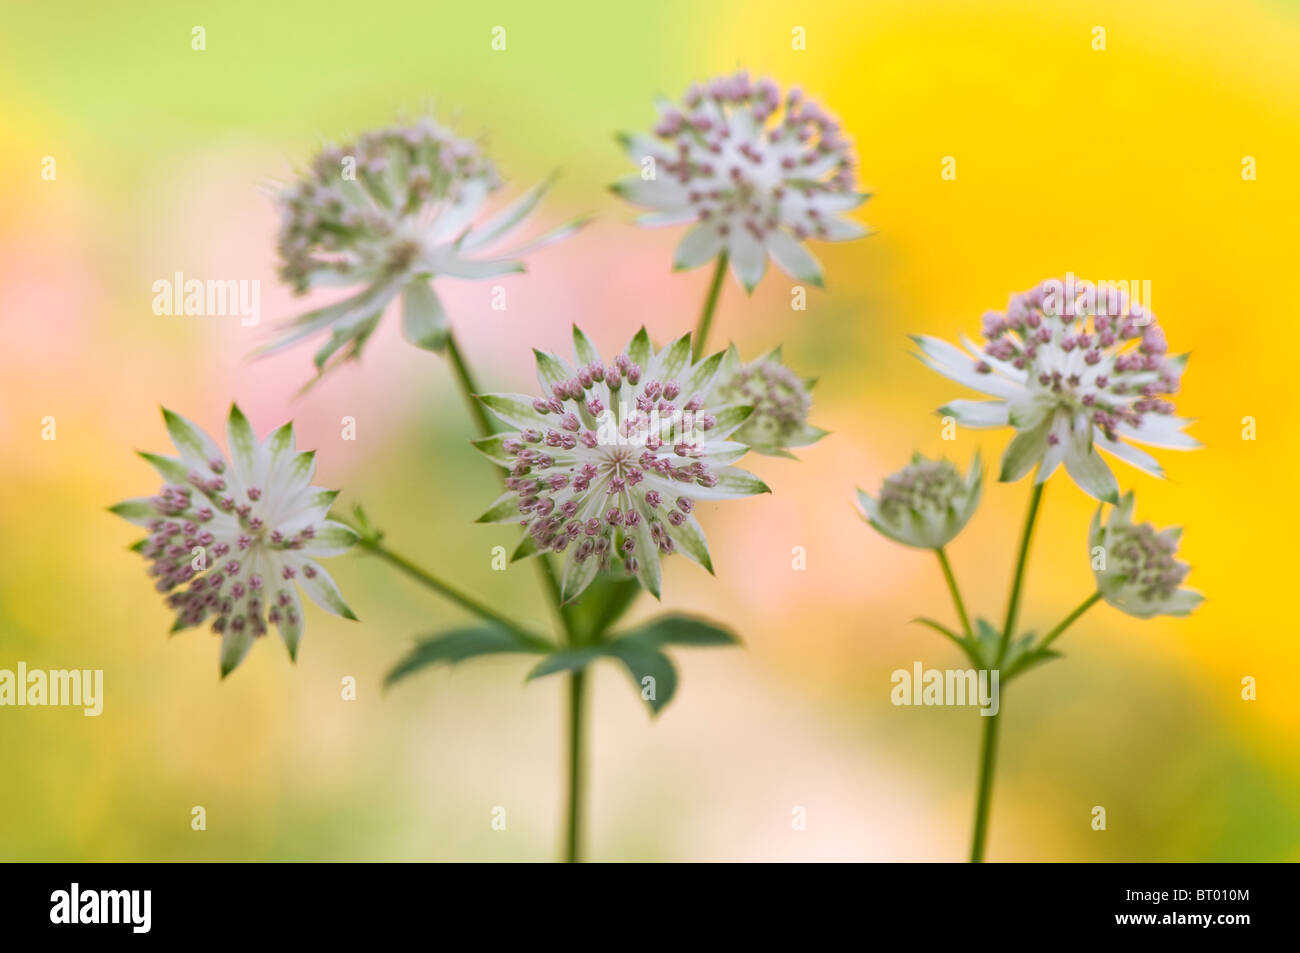 Close-up image of the beautiful summer flowering Astrantia major flower commonly known as Masterwort, image taken - Stock Image